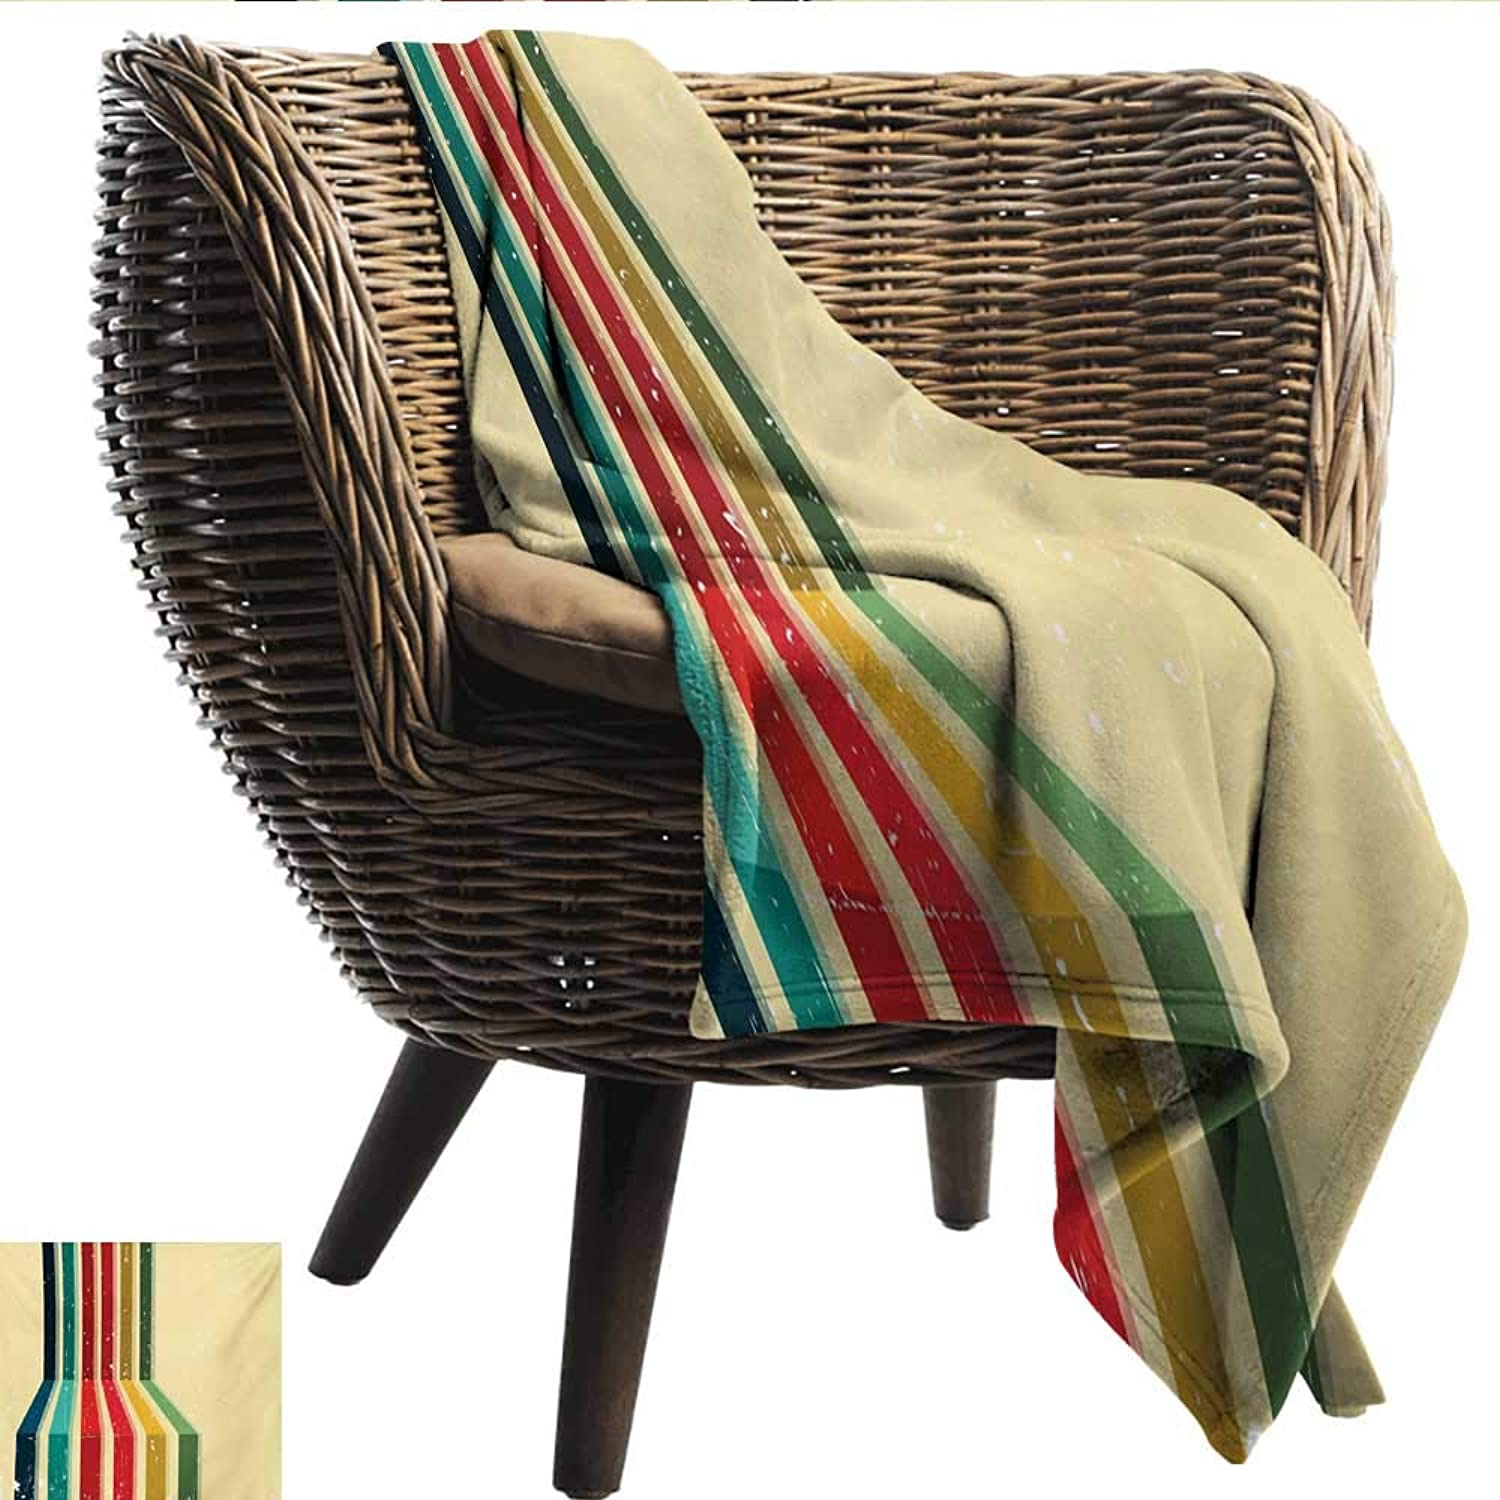 Anshesix Super Soft Blankets Vintage Rainbow greenical colord Stripes with Grunge Effect on a Pale Yellow Background Print Summer Quilt Comforter W60 xL51 Sofa,Picnic,Camping,Beach,Everyday use